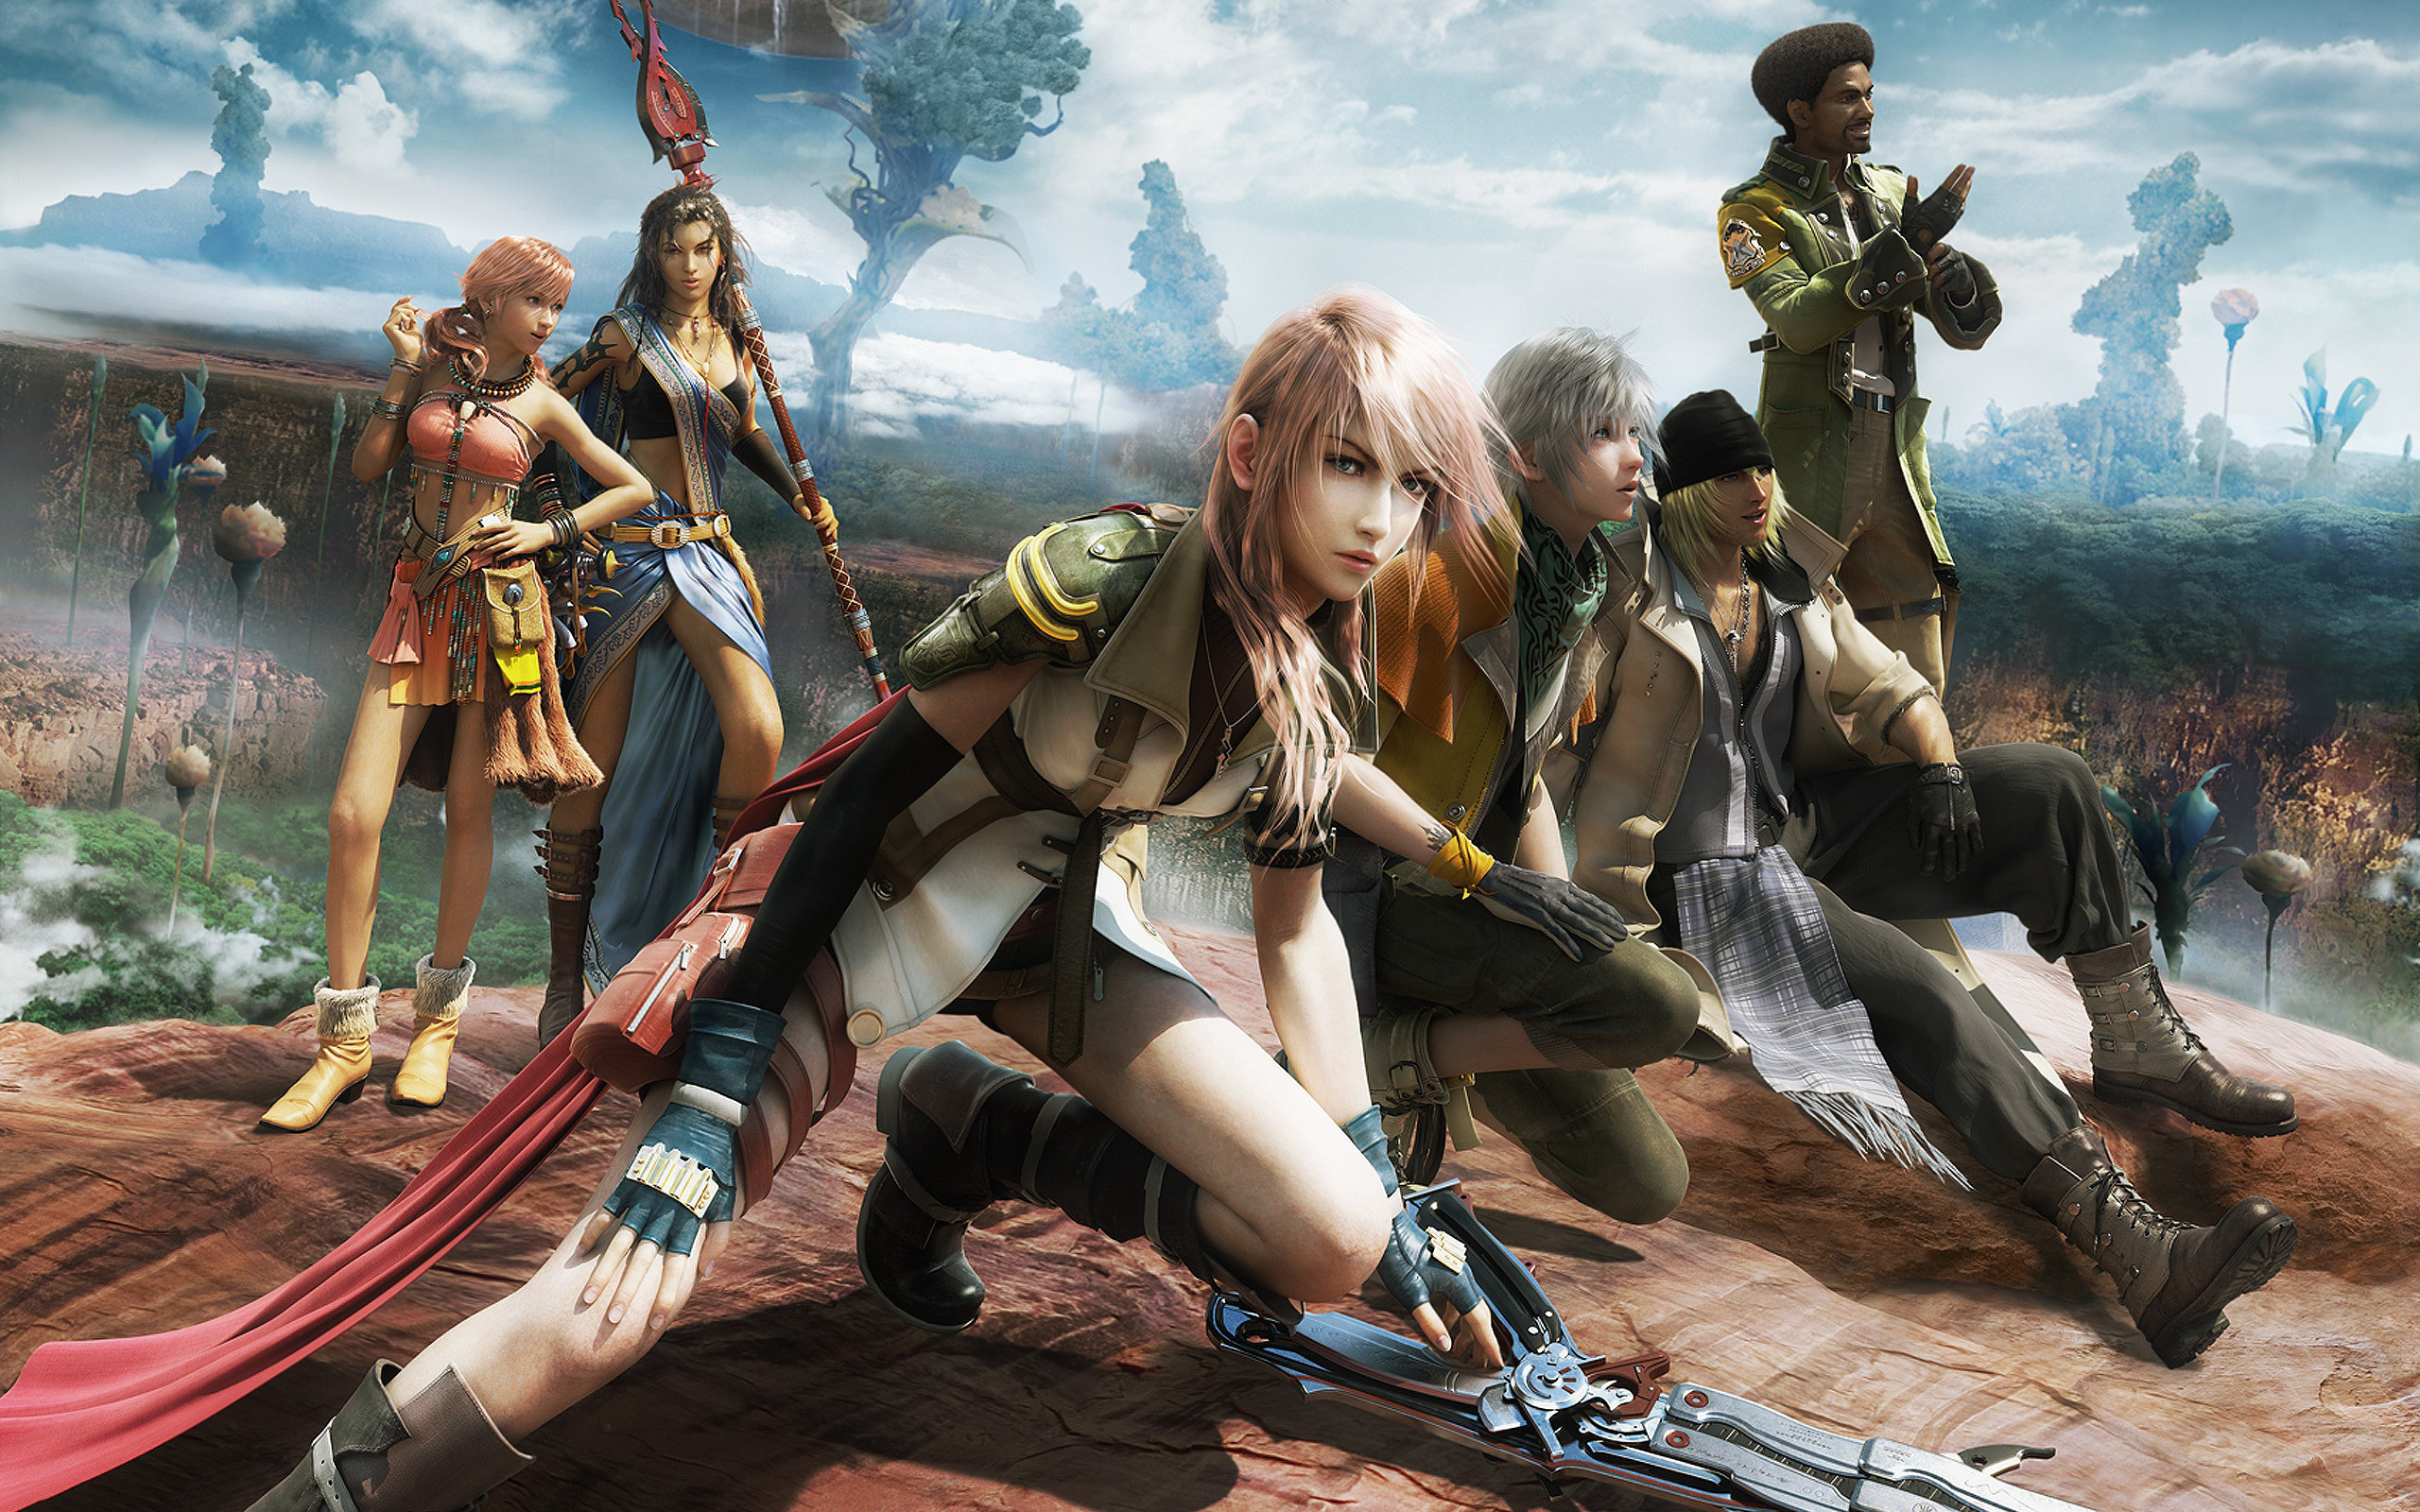 2560x1600  Desktop Wallpaper Final Fantasy Xiii #h354969 | Games HD Images